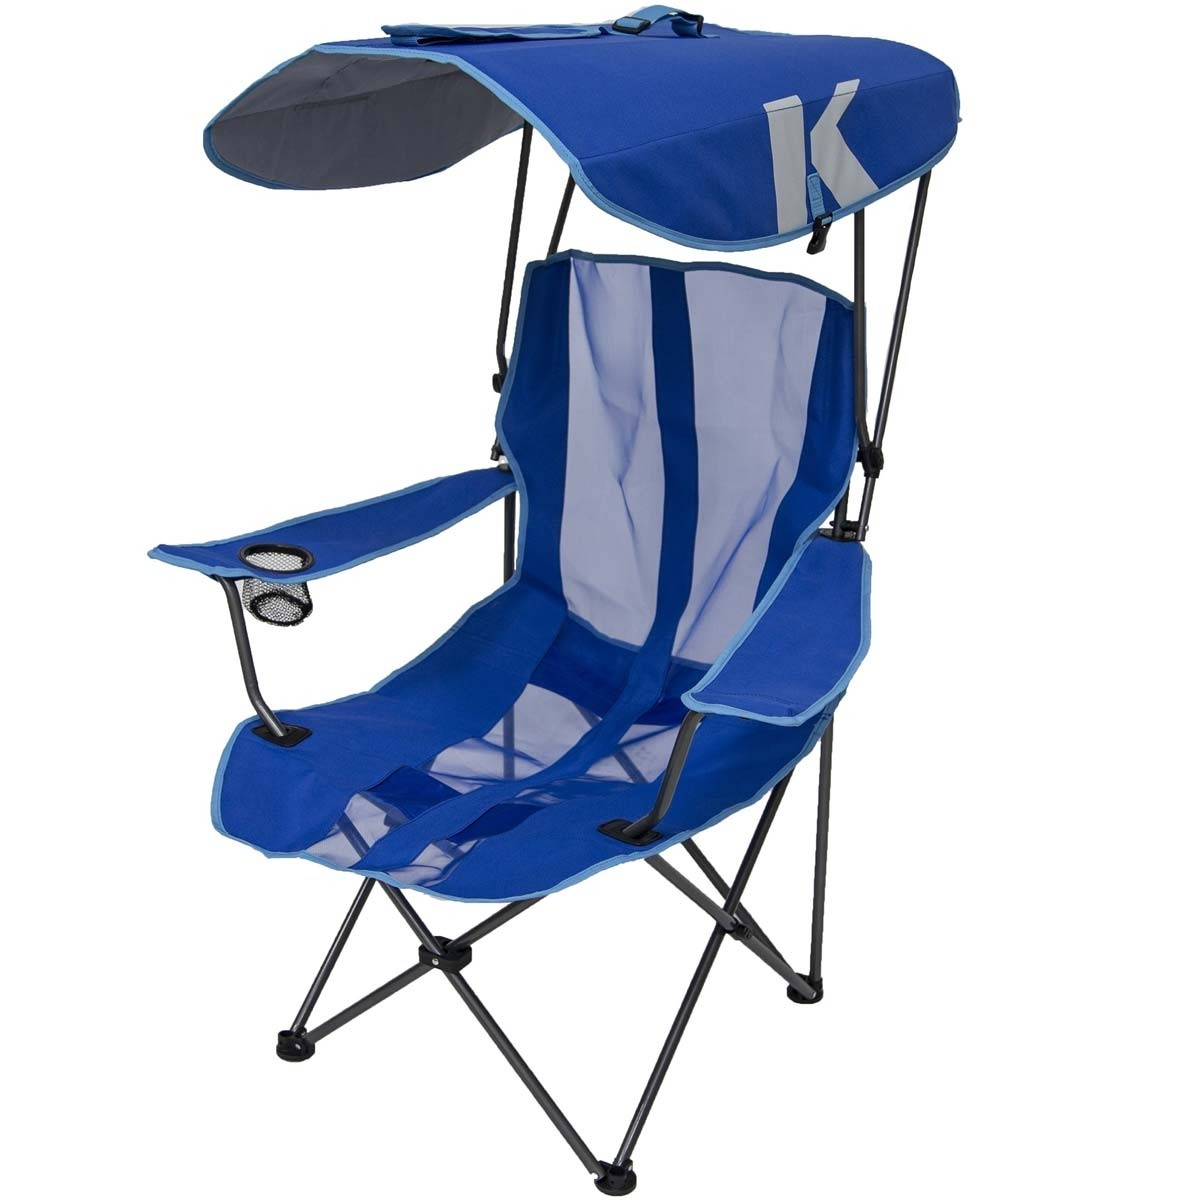 Camping Chair With Canopy Kelsyus Folding Chair With Shade Canopy